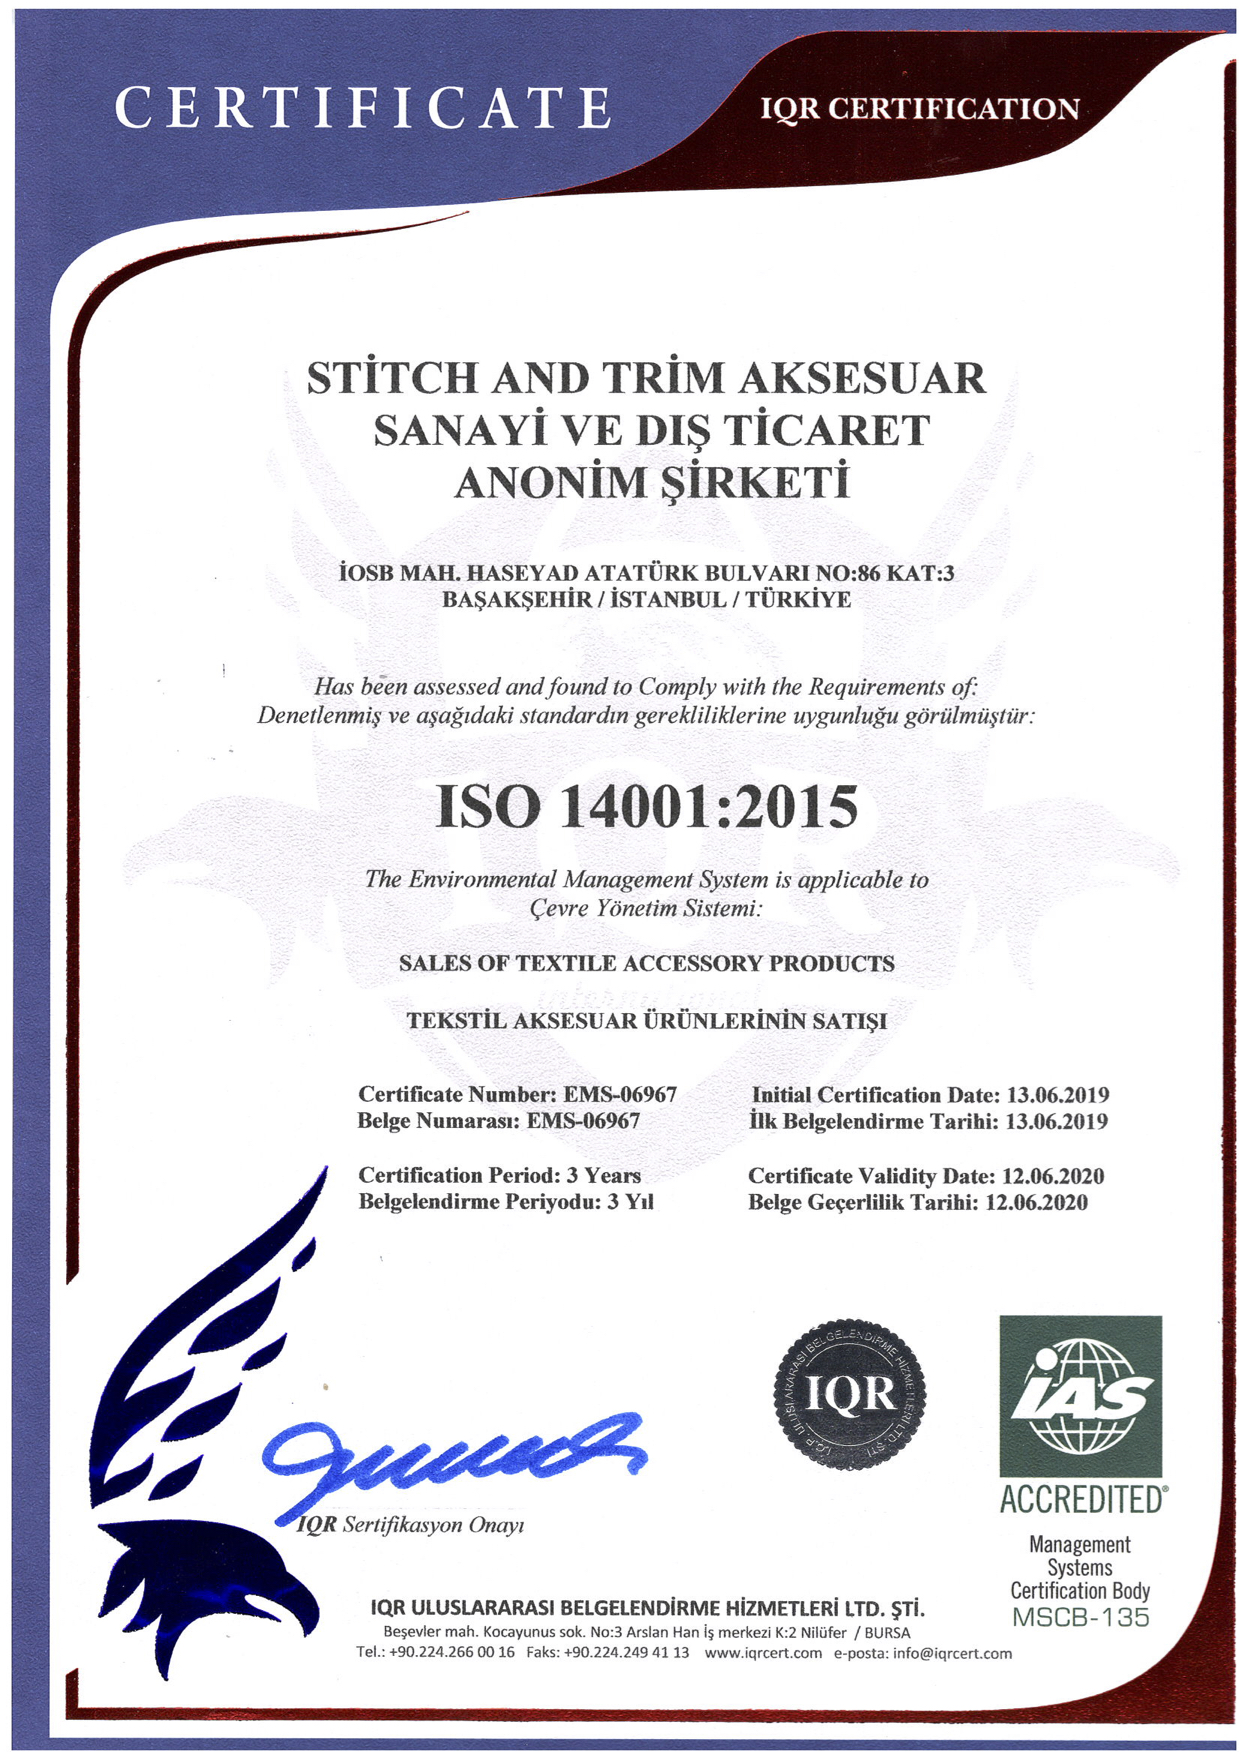 ISO 14001:2015 (THE ENVIRONMENTAL MANAGEMENT SYSTEM)